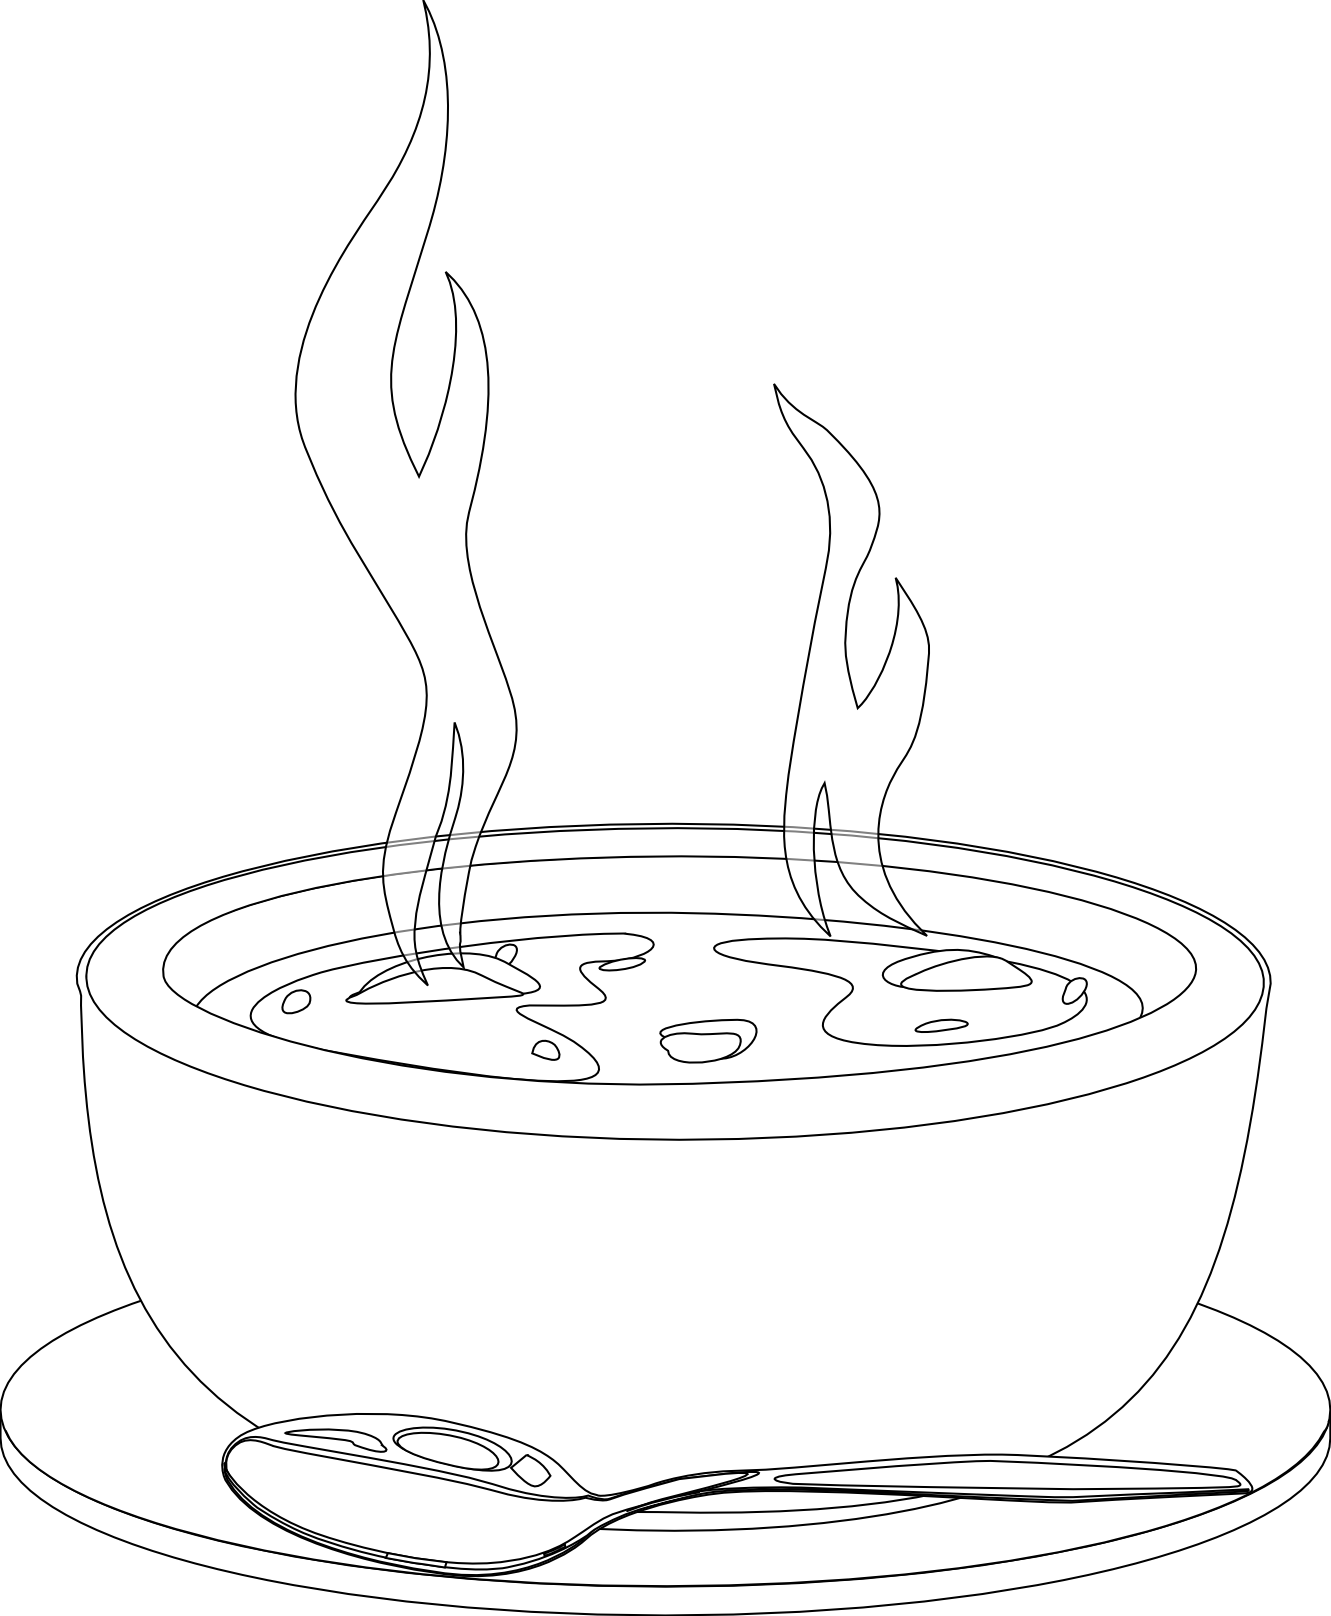 Dishes clipart soup bowl. Black and white panda